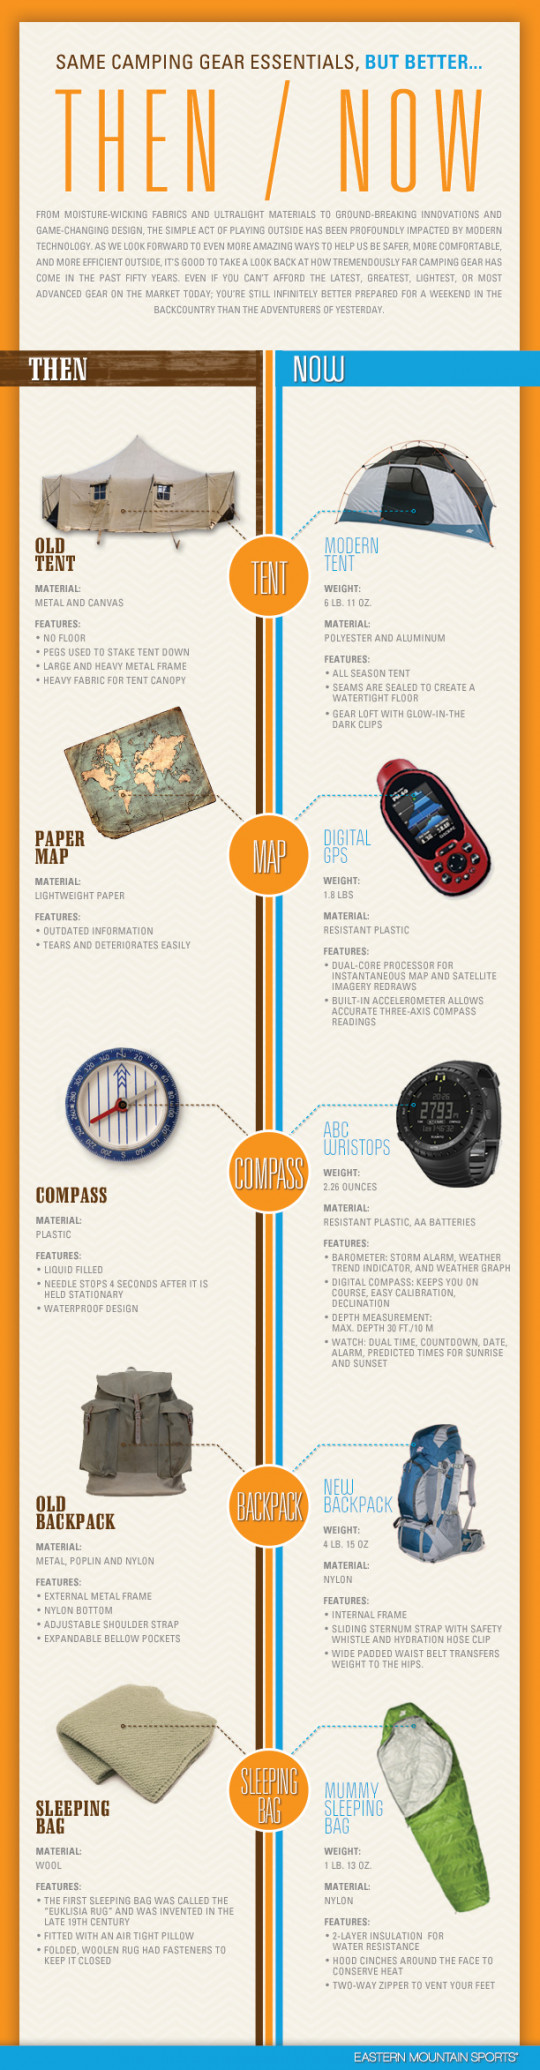 Then/ Now: Same Camping Gear Essentials, But Better